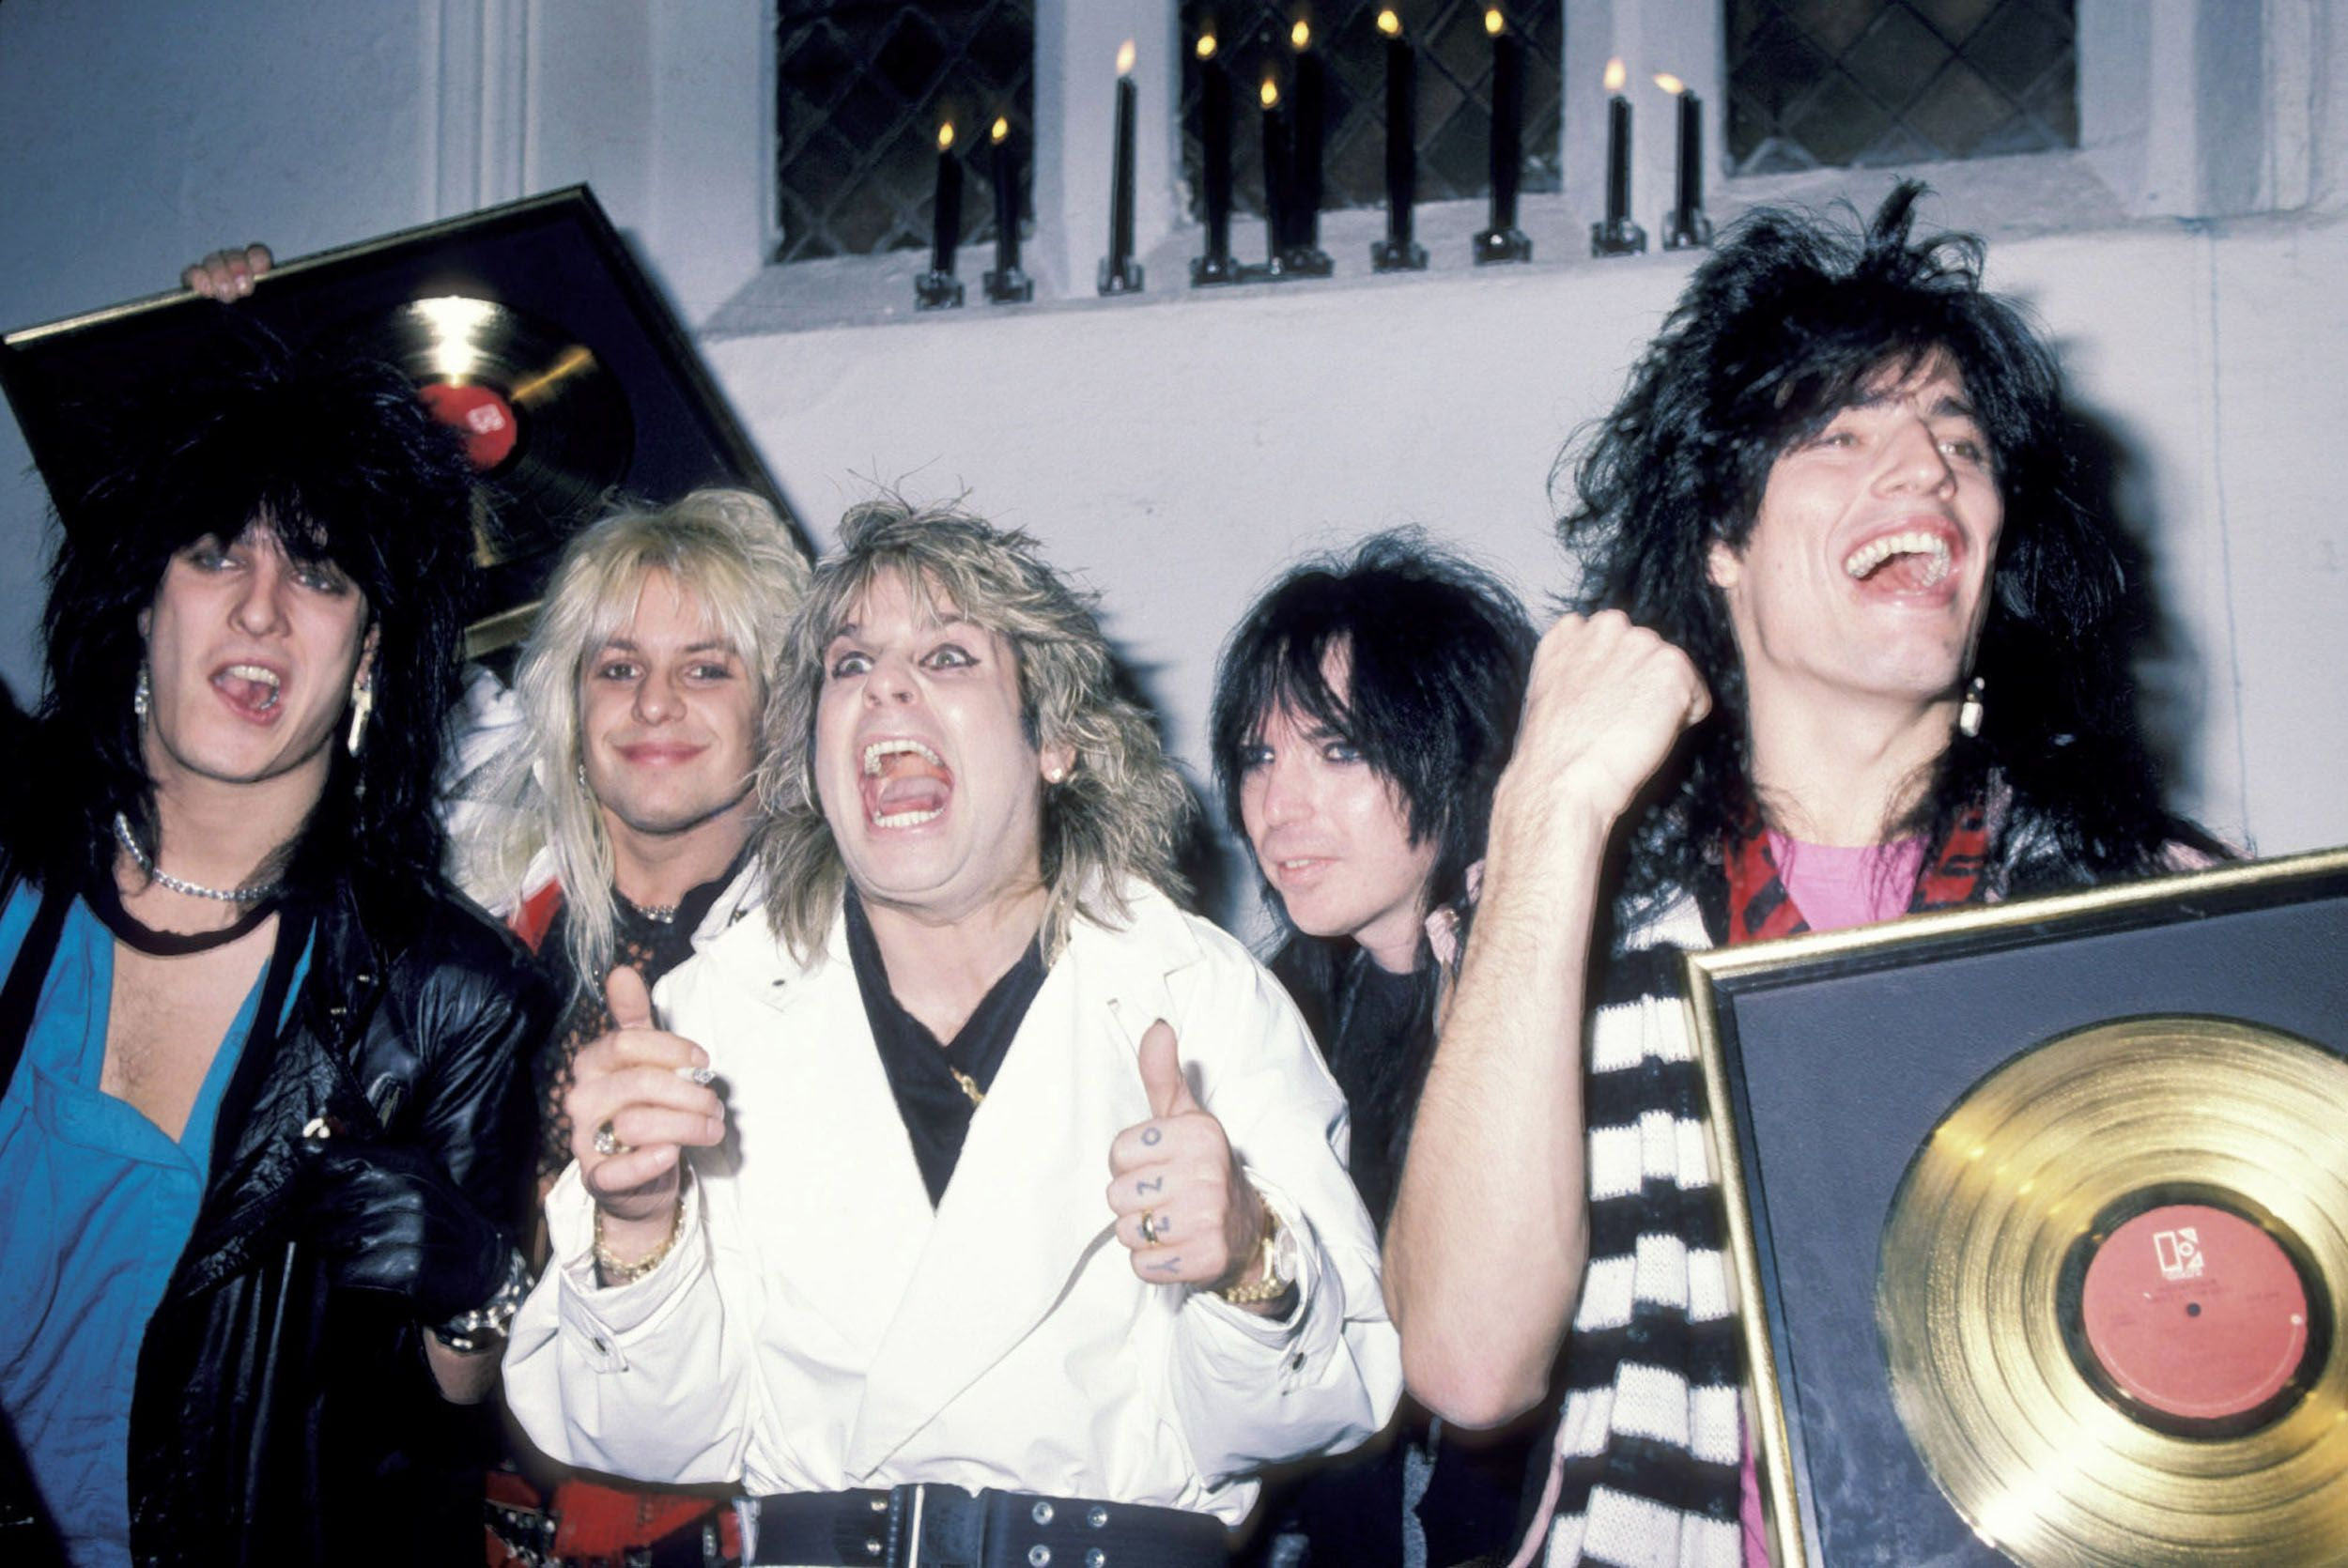 Ozzy Osbourne and Mötley Crüe at the Ozzy Osbourne Concert After-Party at Peter Gatien's Limelight Entertainment Complex in NYC in 1984.